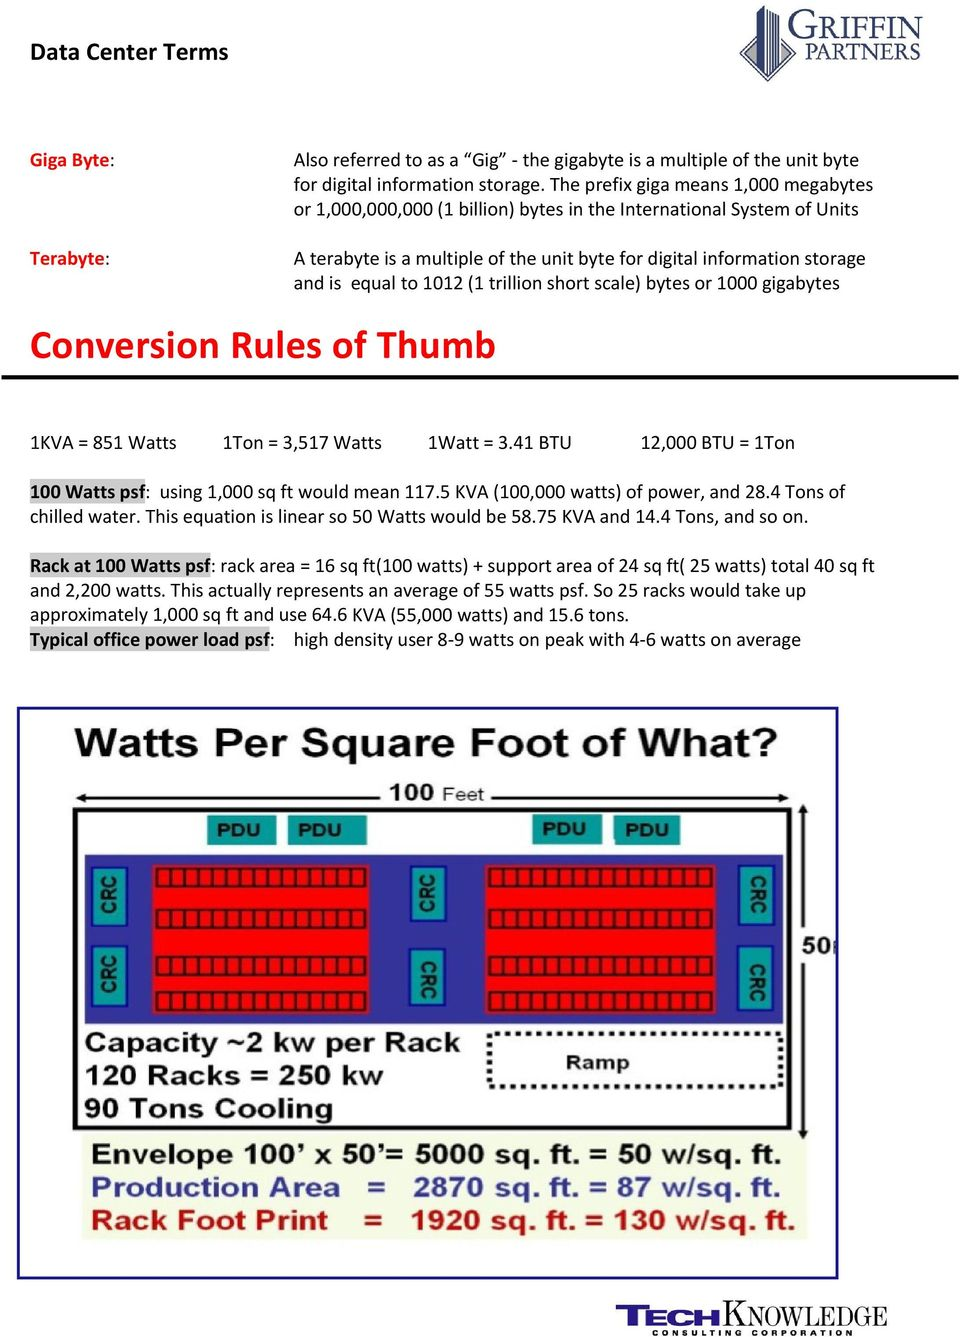 1012 (1 trillion short scale) bytes or 1000 gigabytes Conversion Rules of Thumb 1KVA = 851 Watts 1Ton = 3,517 Watts 1Watt = 3.41 BTU 12,000 BTU = 1Ton 100 Watts psf: using 1,000 sq ft would mean 117.